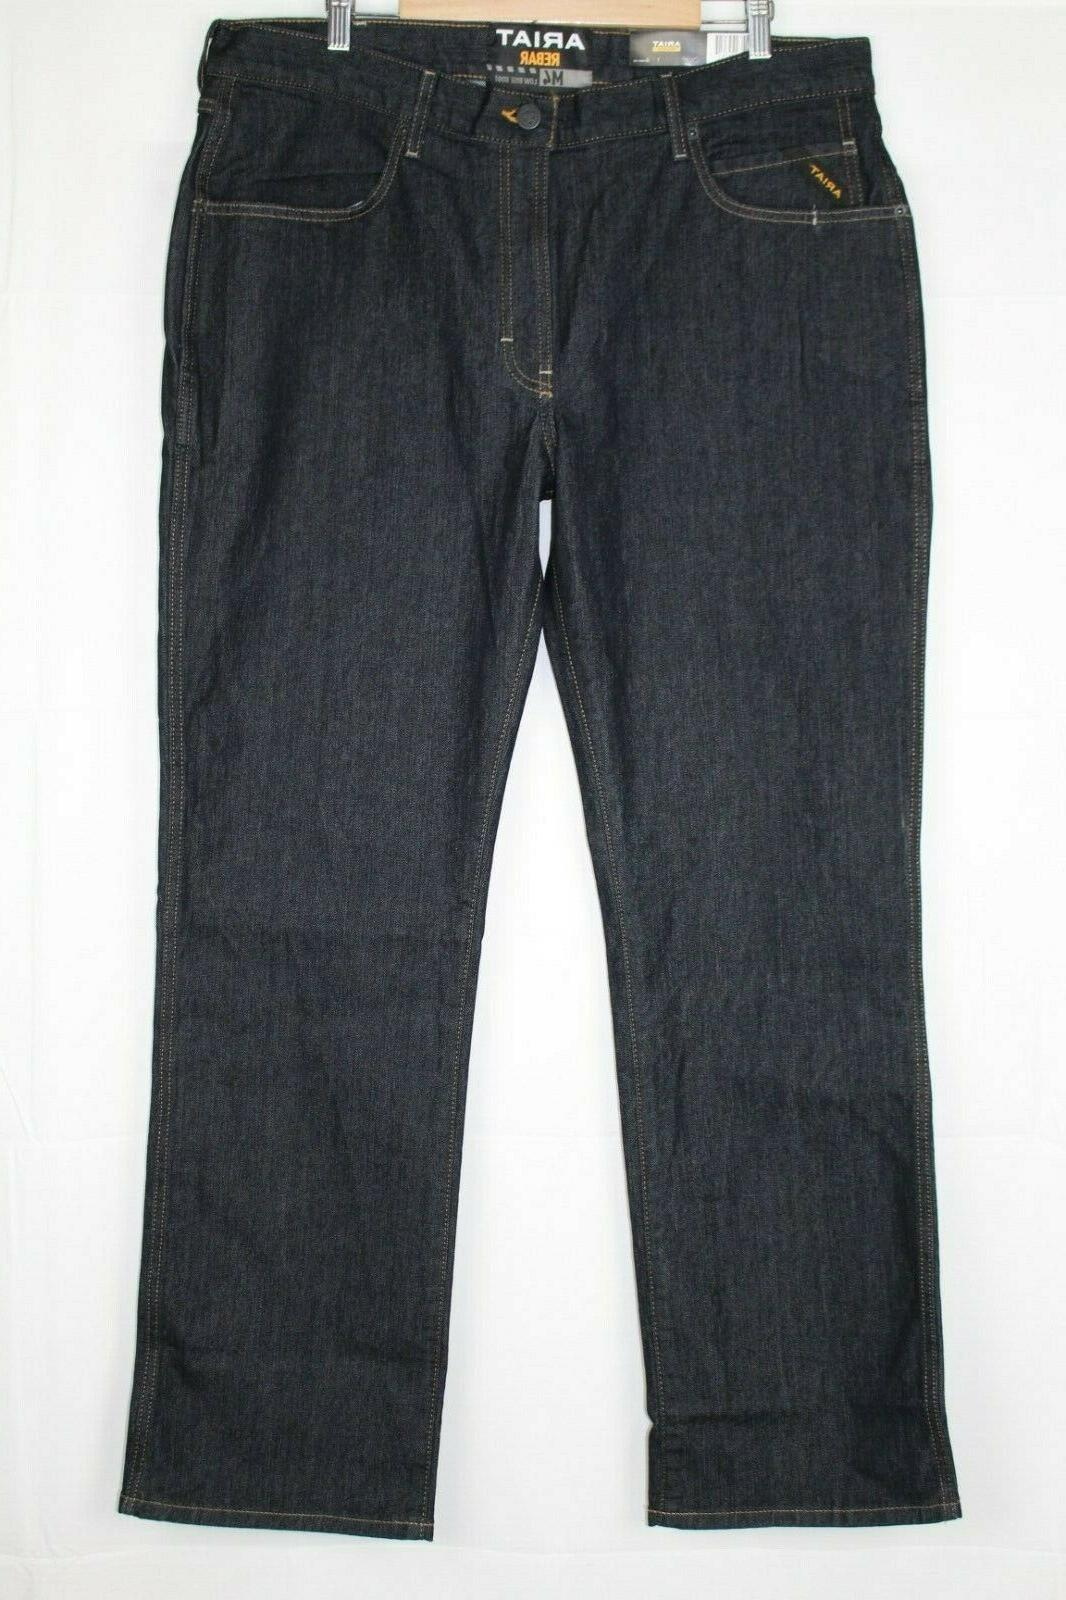 Durastretch Rise Work Jeans Rinse